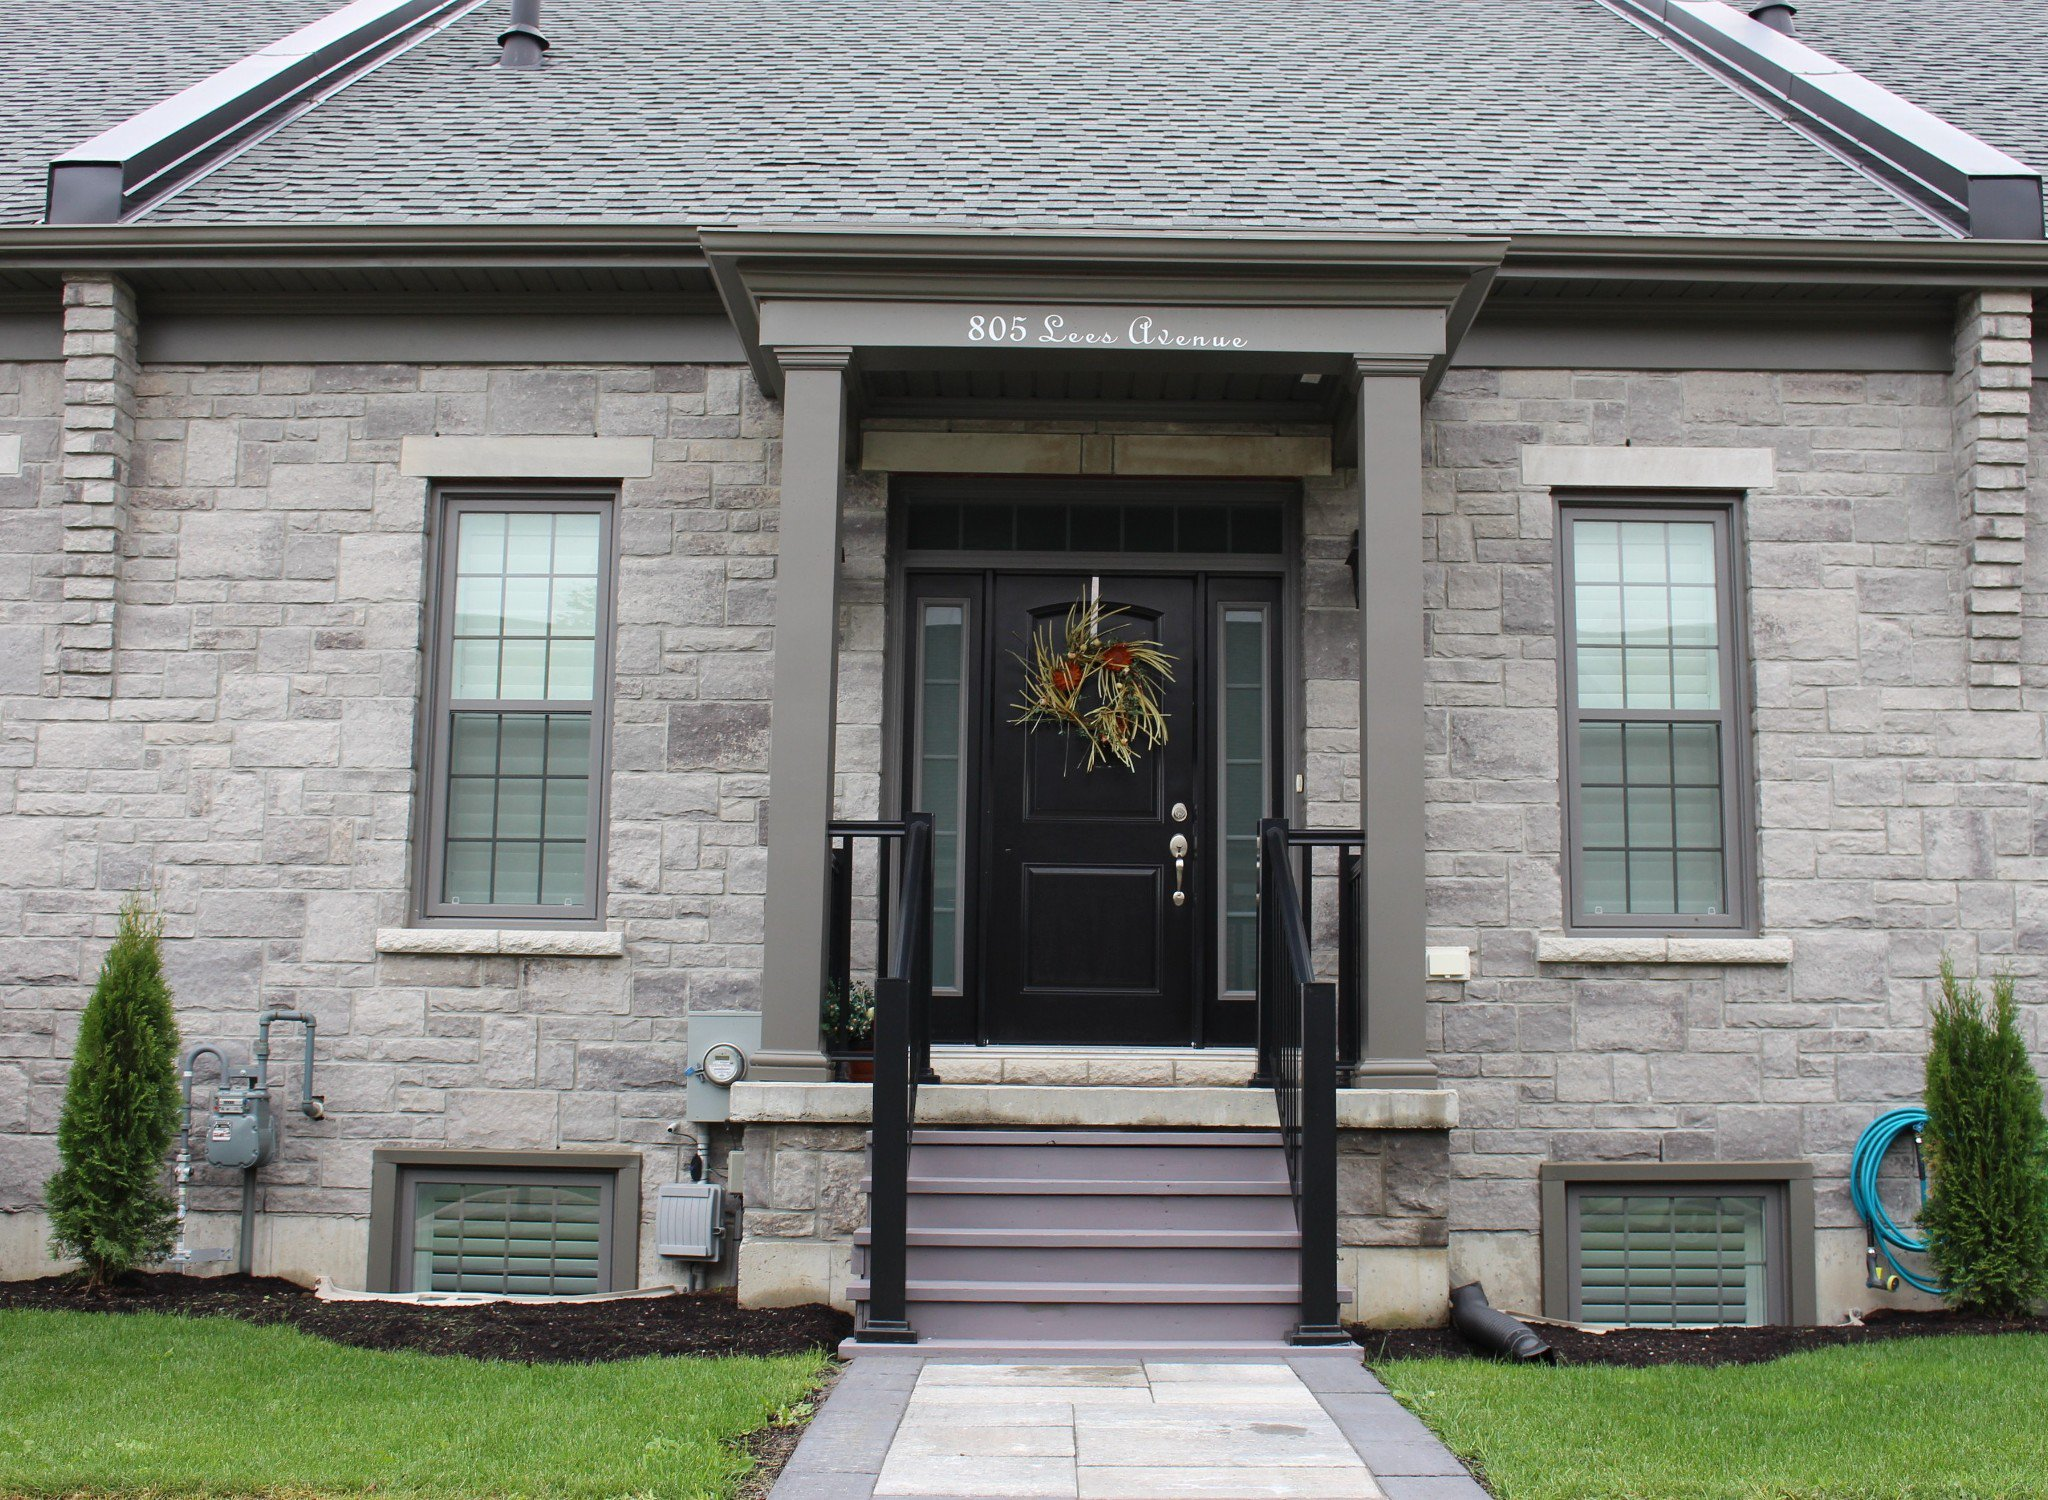 Main Photo: 805 Lees Avenue in Cobourg: Residential Attached for sale : MLS®# 157642